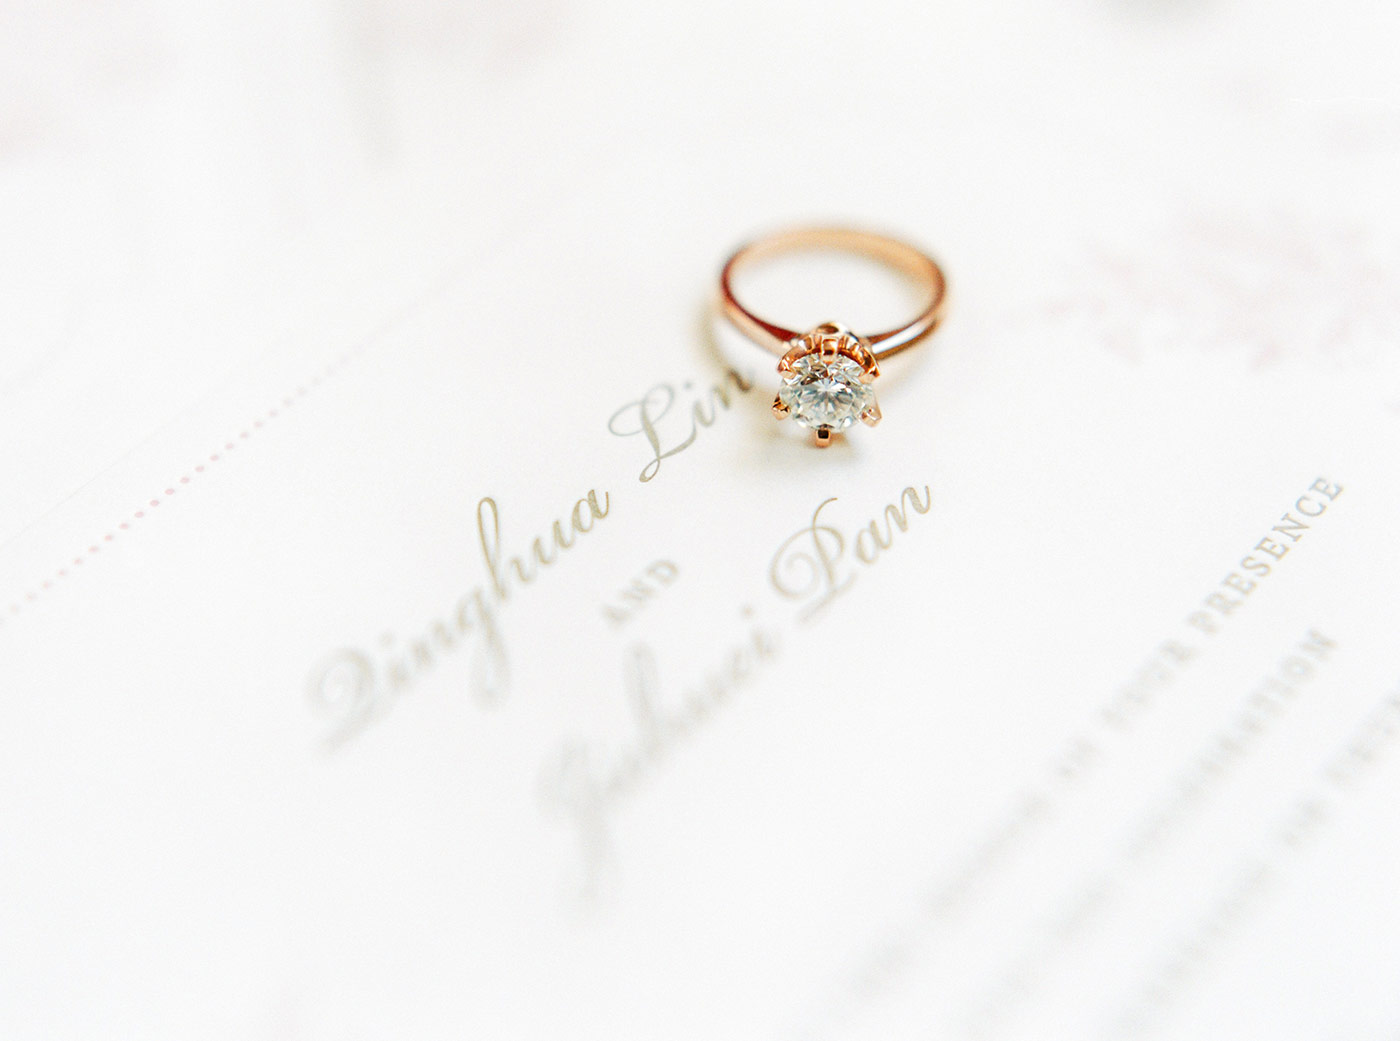 Bride's Solitaire Engagement Ring